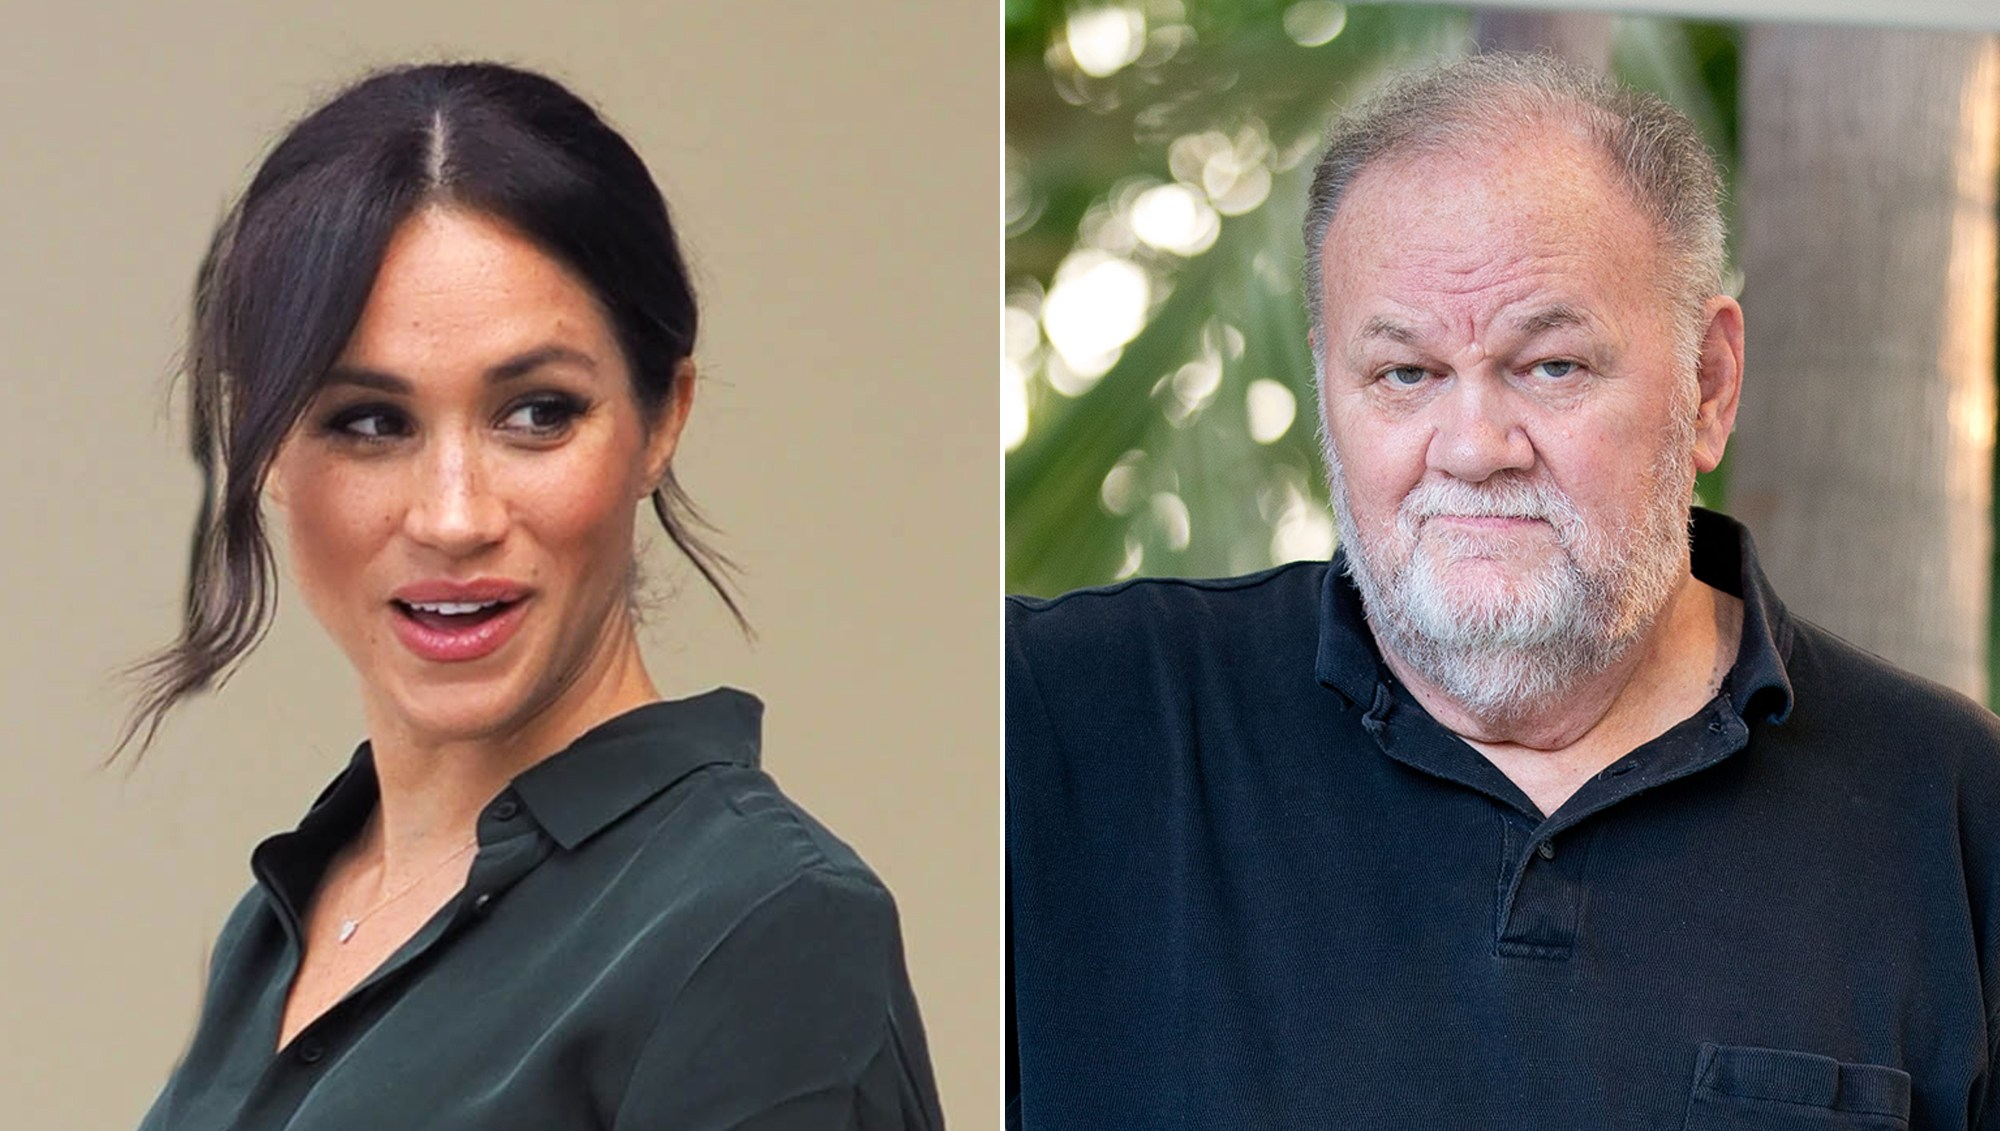 Duchess Meghan's Father Thomas Markle Found Out About Her Pregnancy 'With the Rest of the World'